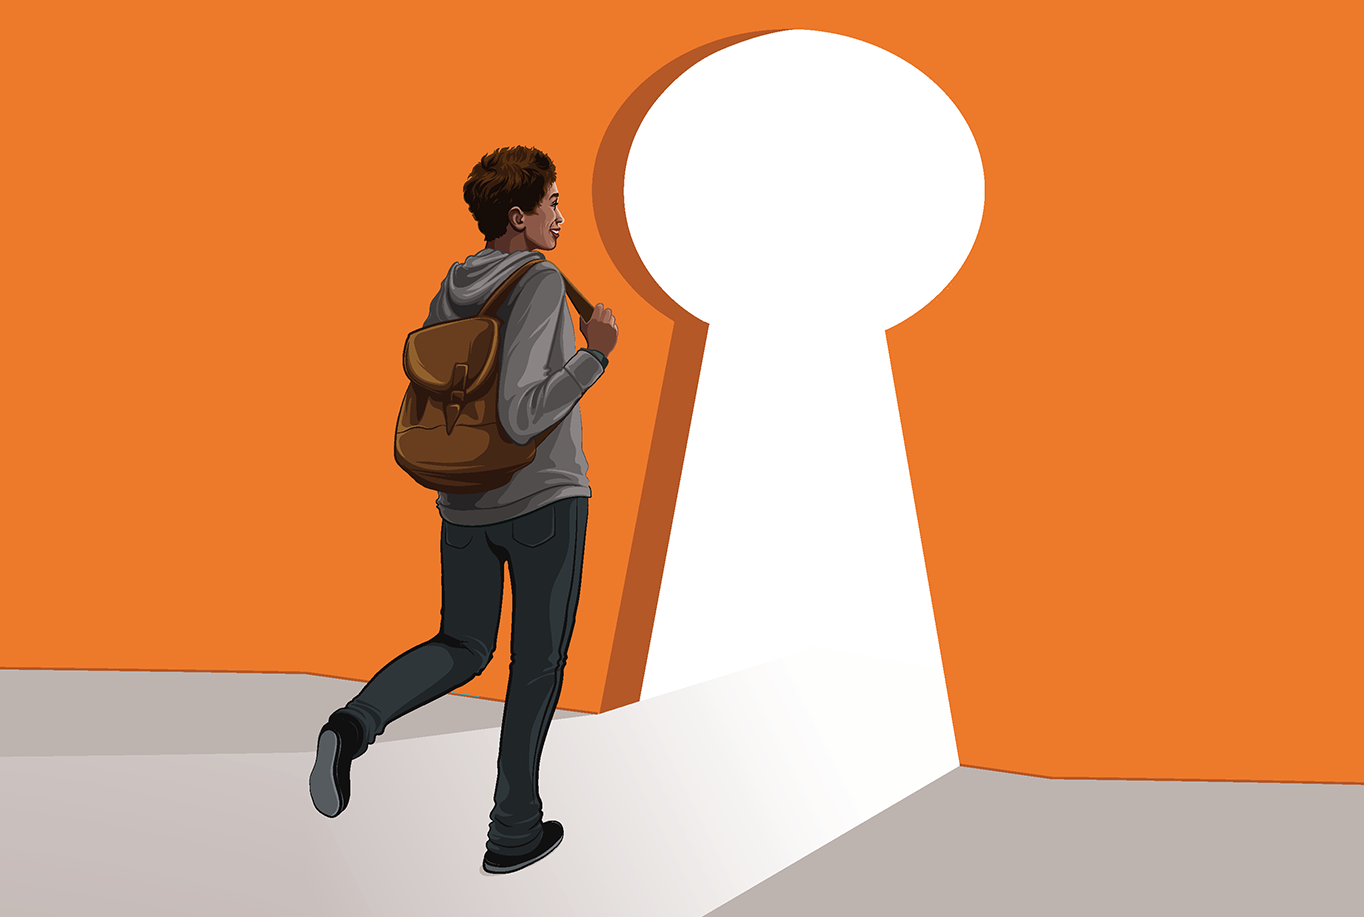 illustration of person with backpack walking through keyhole in wall.